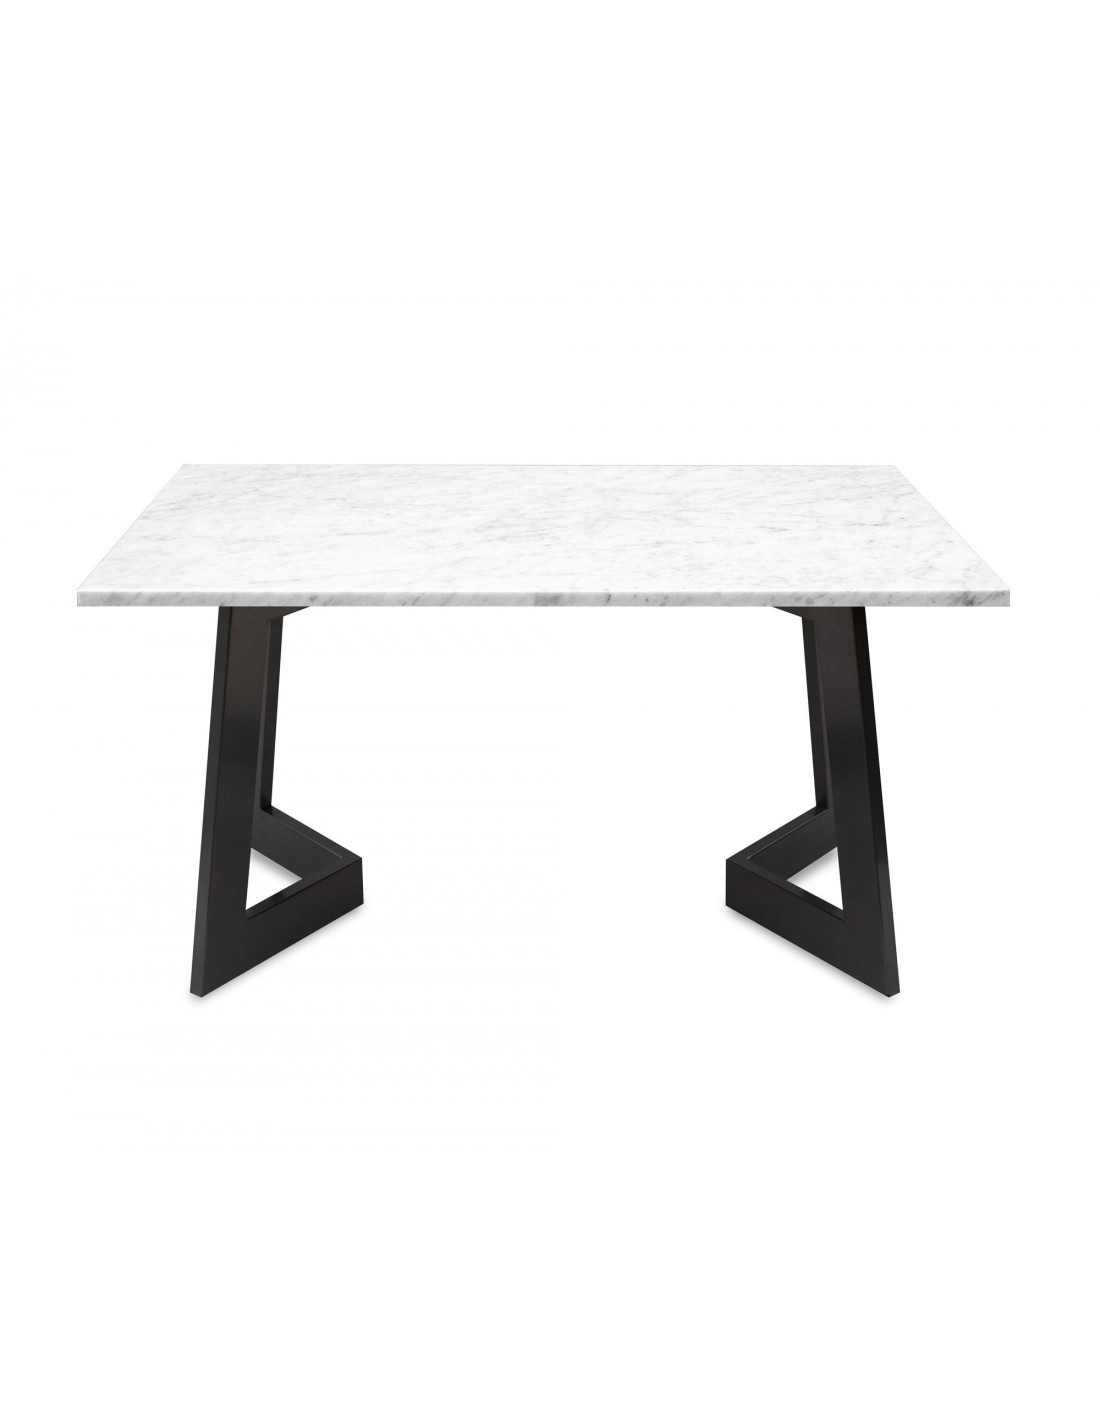 Hemnes Coffee Table Light Brown 90 X 90 Cm: Modern Coffee Table AMAND L, Marble Top Color BIANCO